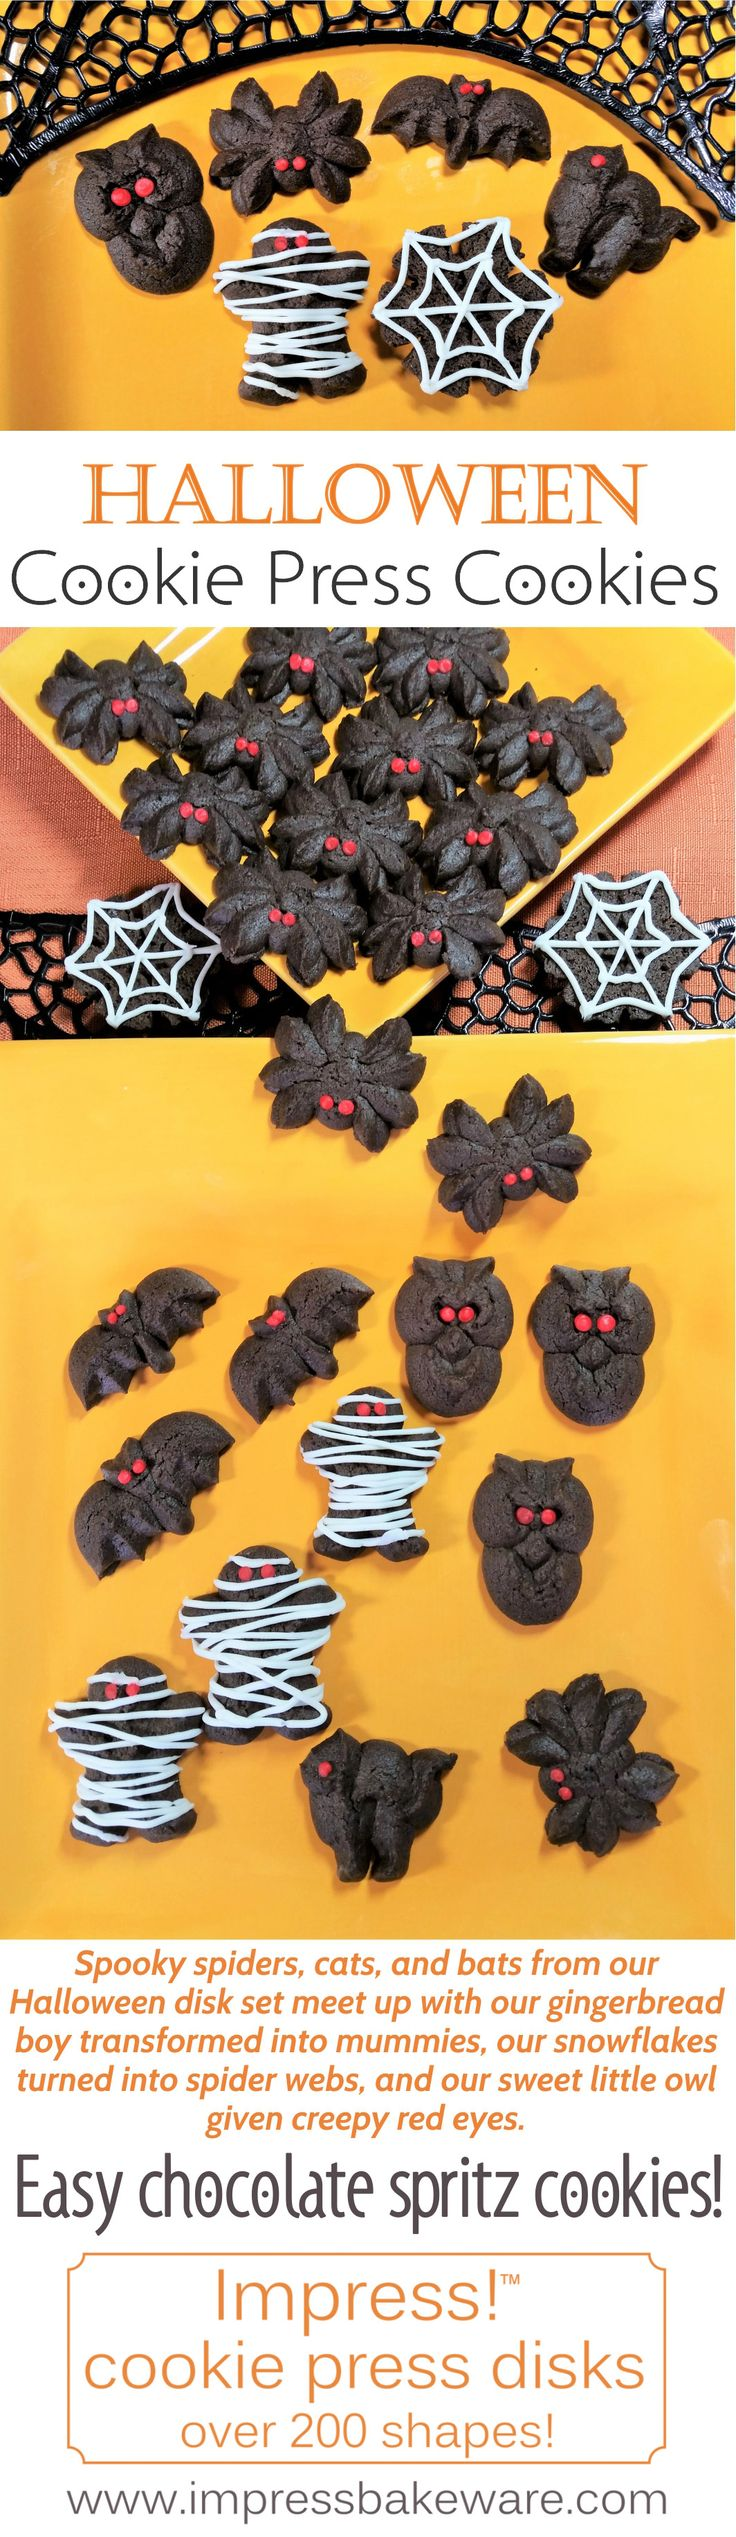 Easy chocolate cookie press spritz cookies. Spooky spiders, cats, and bats from our Halloween disk set meet up with our gingerbread boy transformed into mummies, our snowflakes turned into spider webs, and our sweet little owl given creepy red eyes.